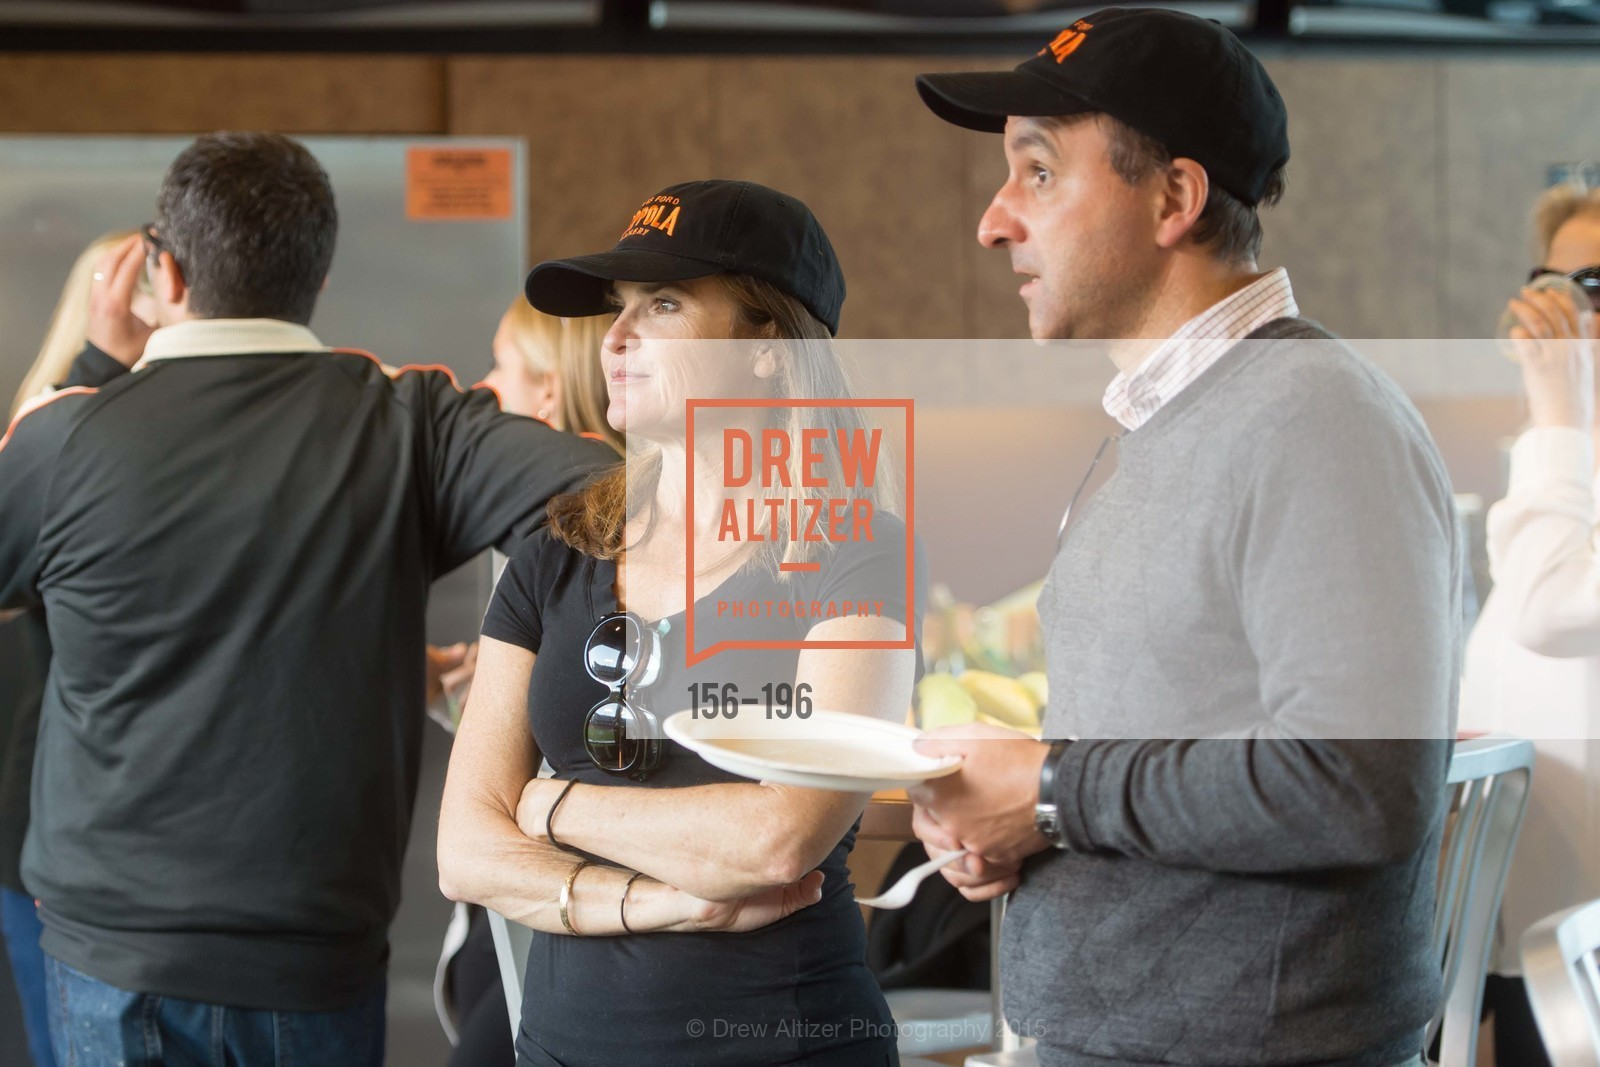 Mimi Towle, Francois Tordesse, Francis Ford Coppola Winery Presents Diamond on the Diamond, San Francisco Giants AT&T Park, Virgin America Loft. 24 Willie Mays Plaza, July 10th, 2015,Drew Altizer, Drew Altizer Photography, full-service agency, private events, San Francisco photographer, photographer california